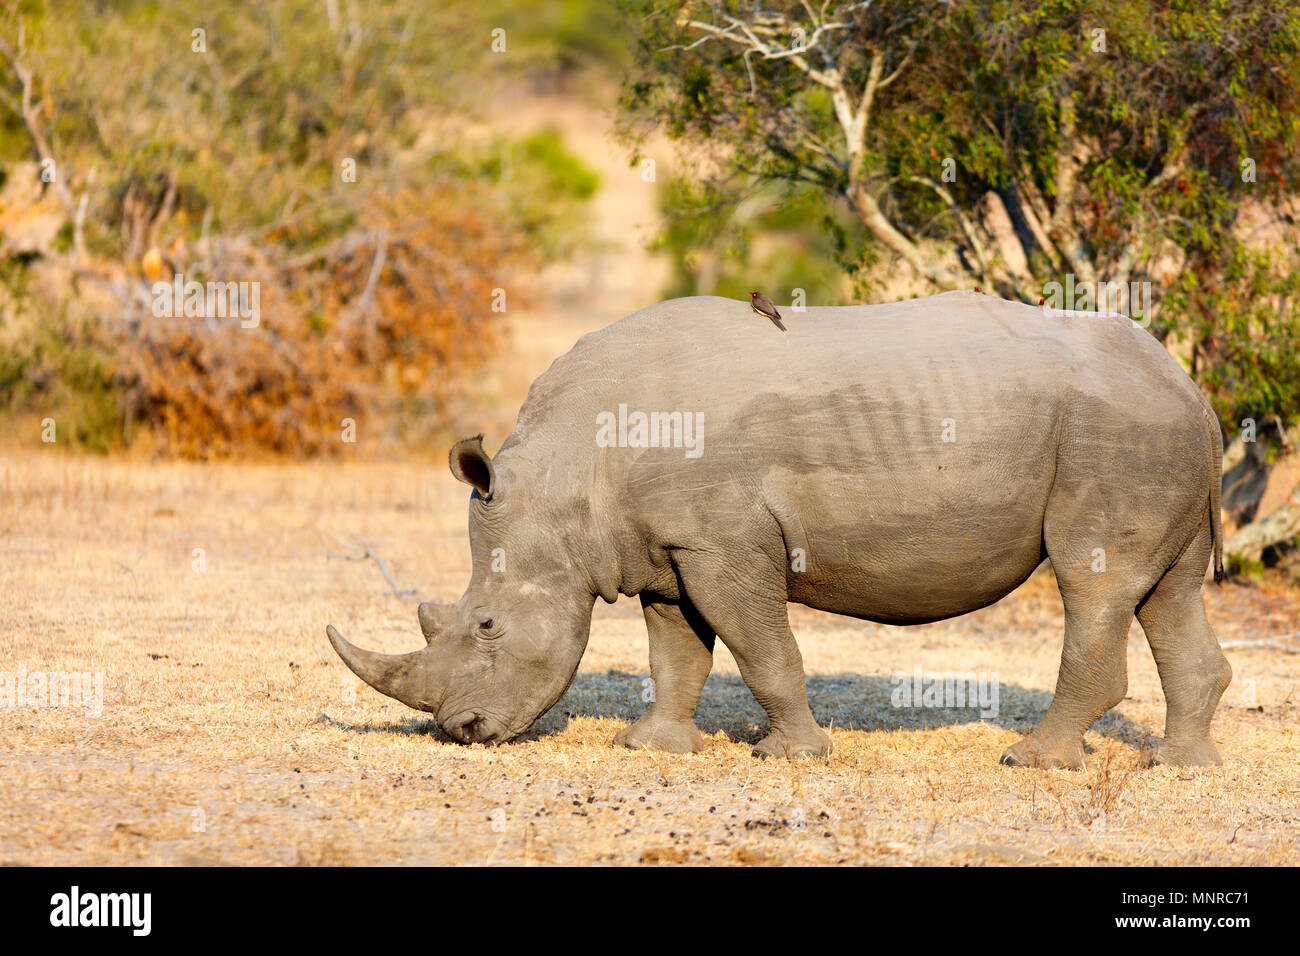 White rhino grazing in an open field in South Africa - Stock Image